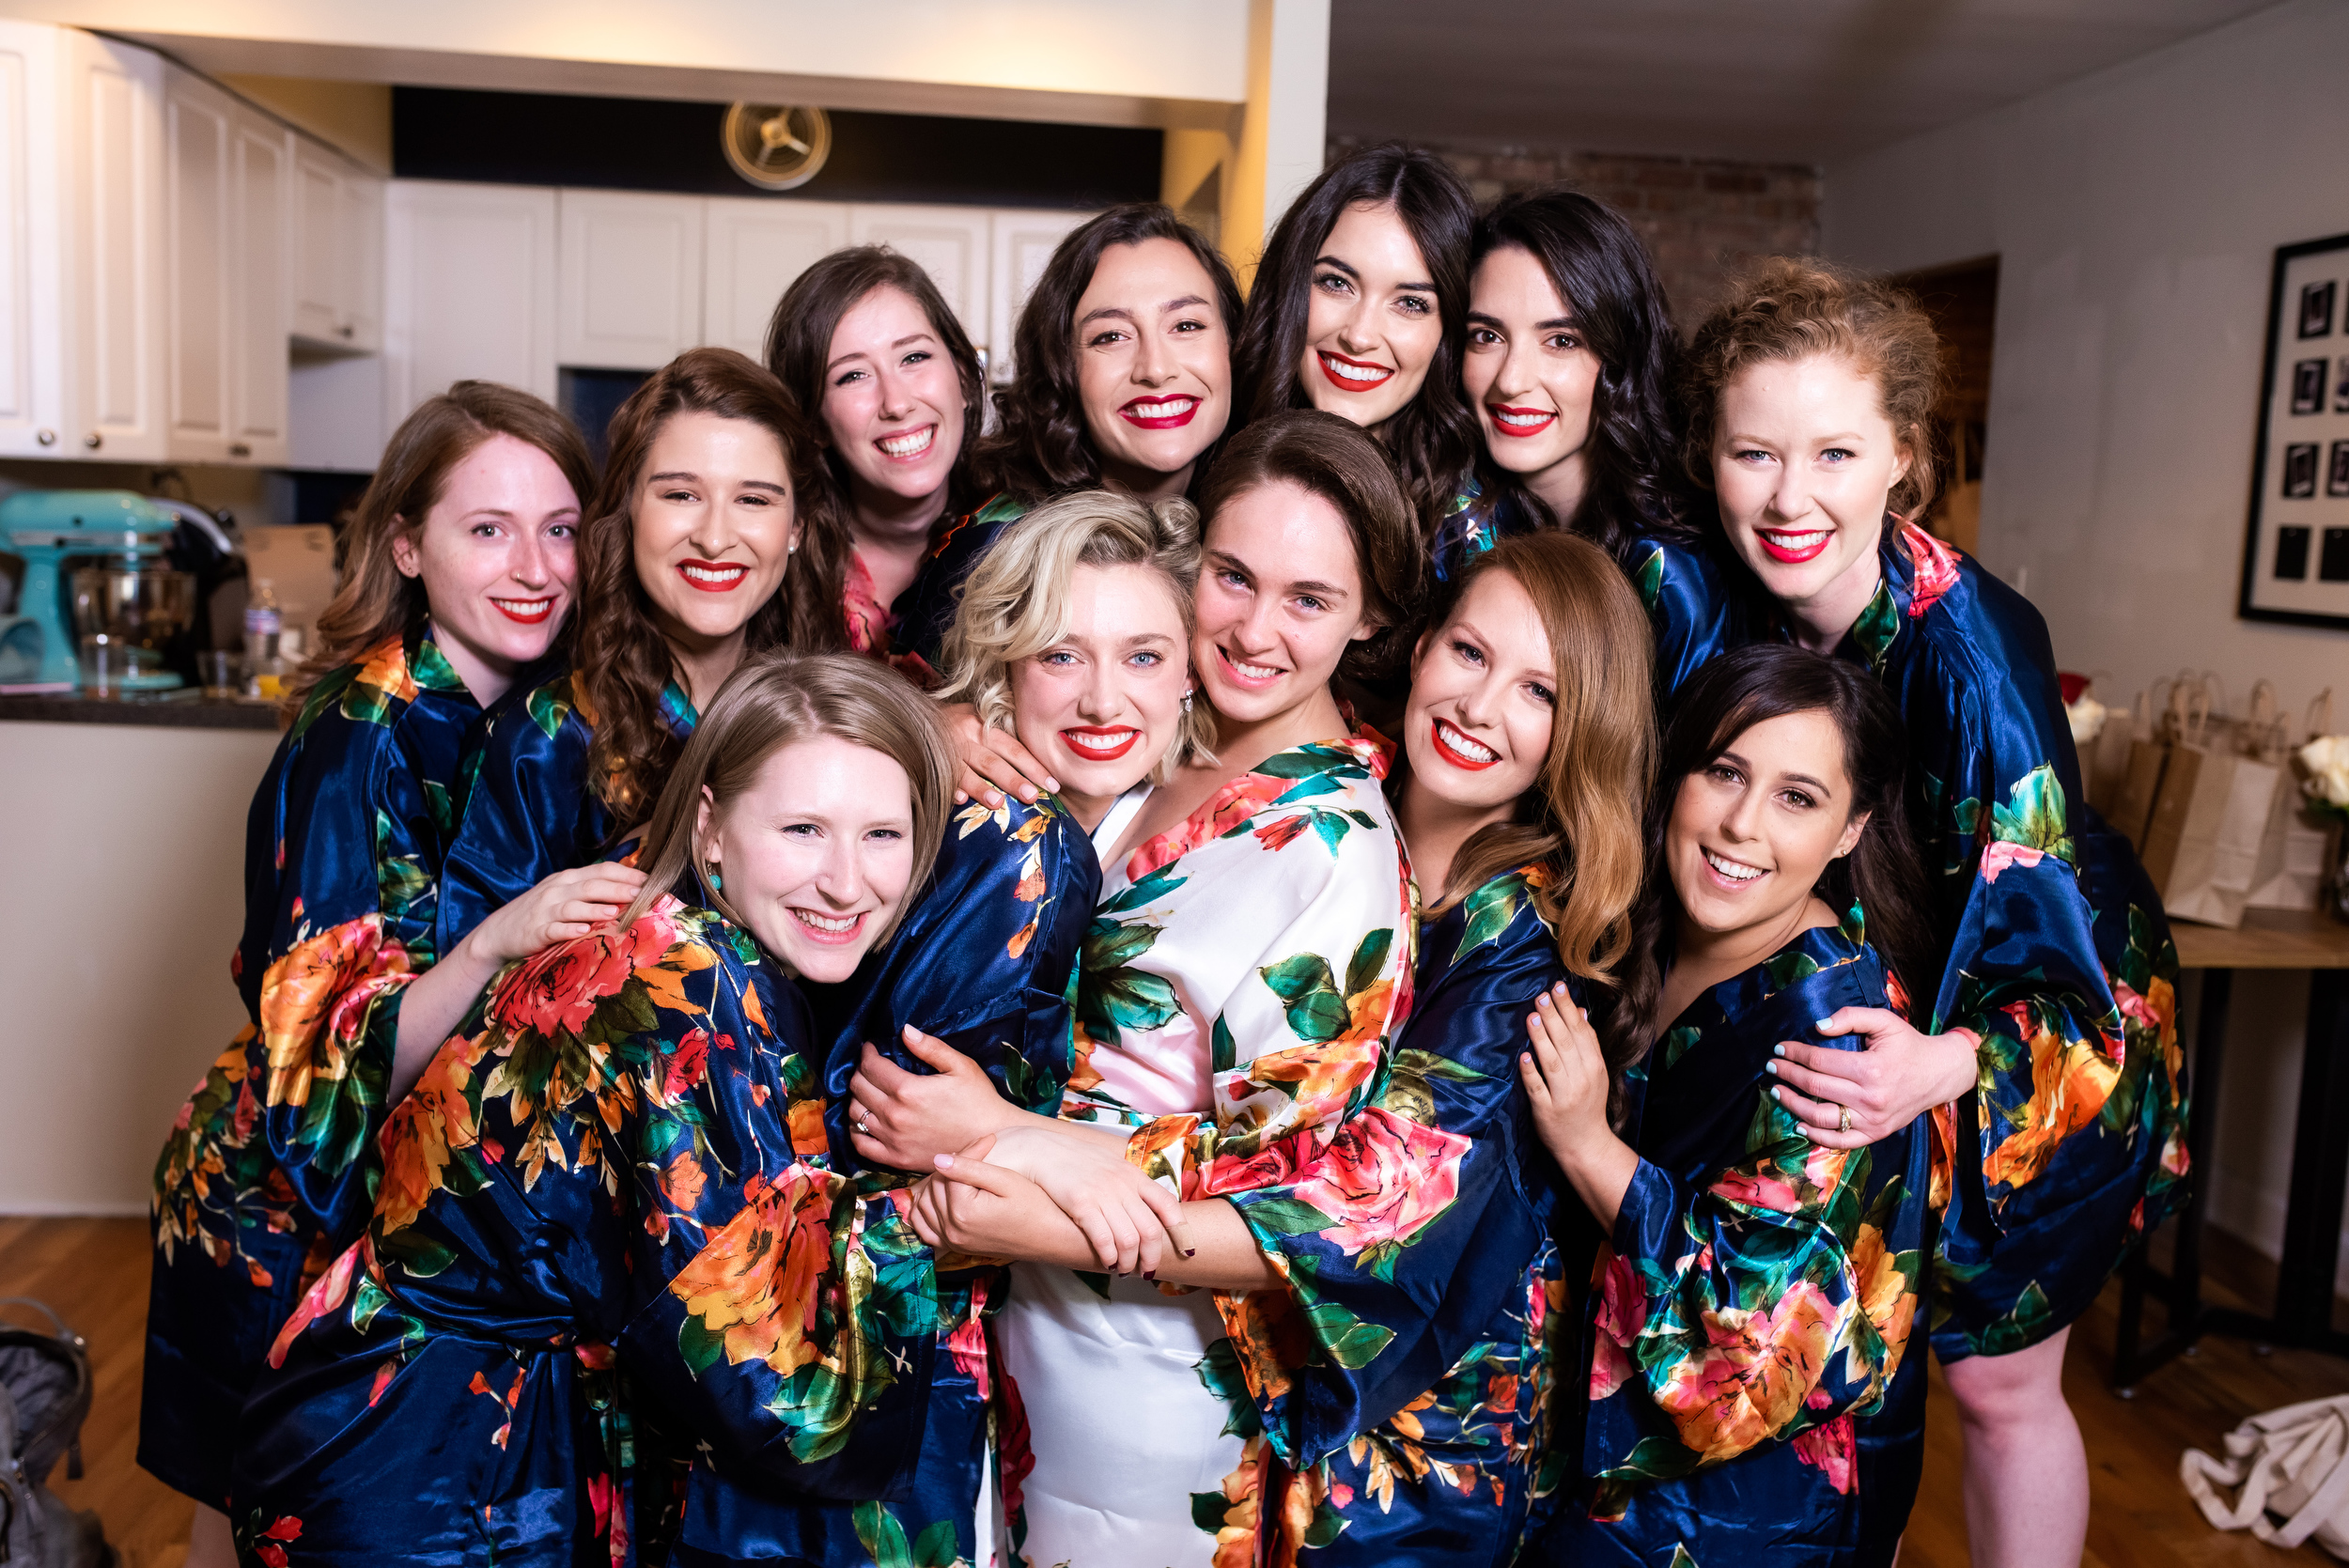 Bridal party group photo for Carnivale Chicago wedding captured by J Brown Photography